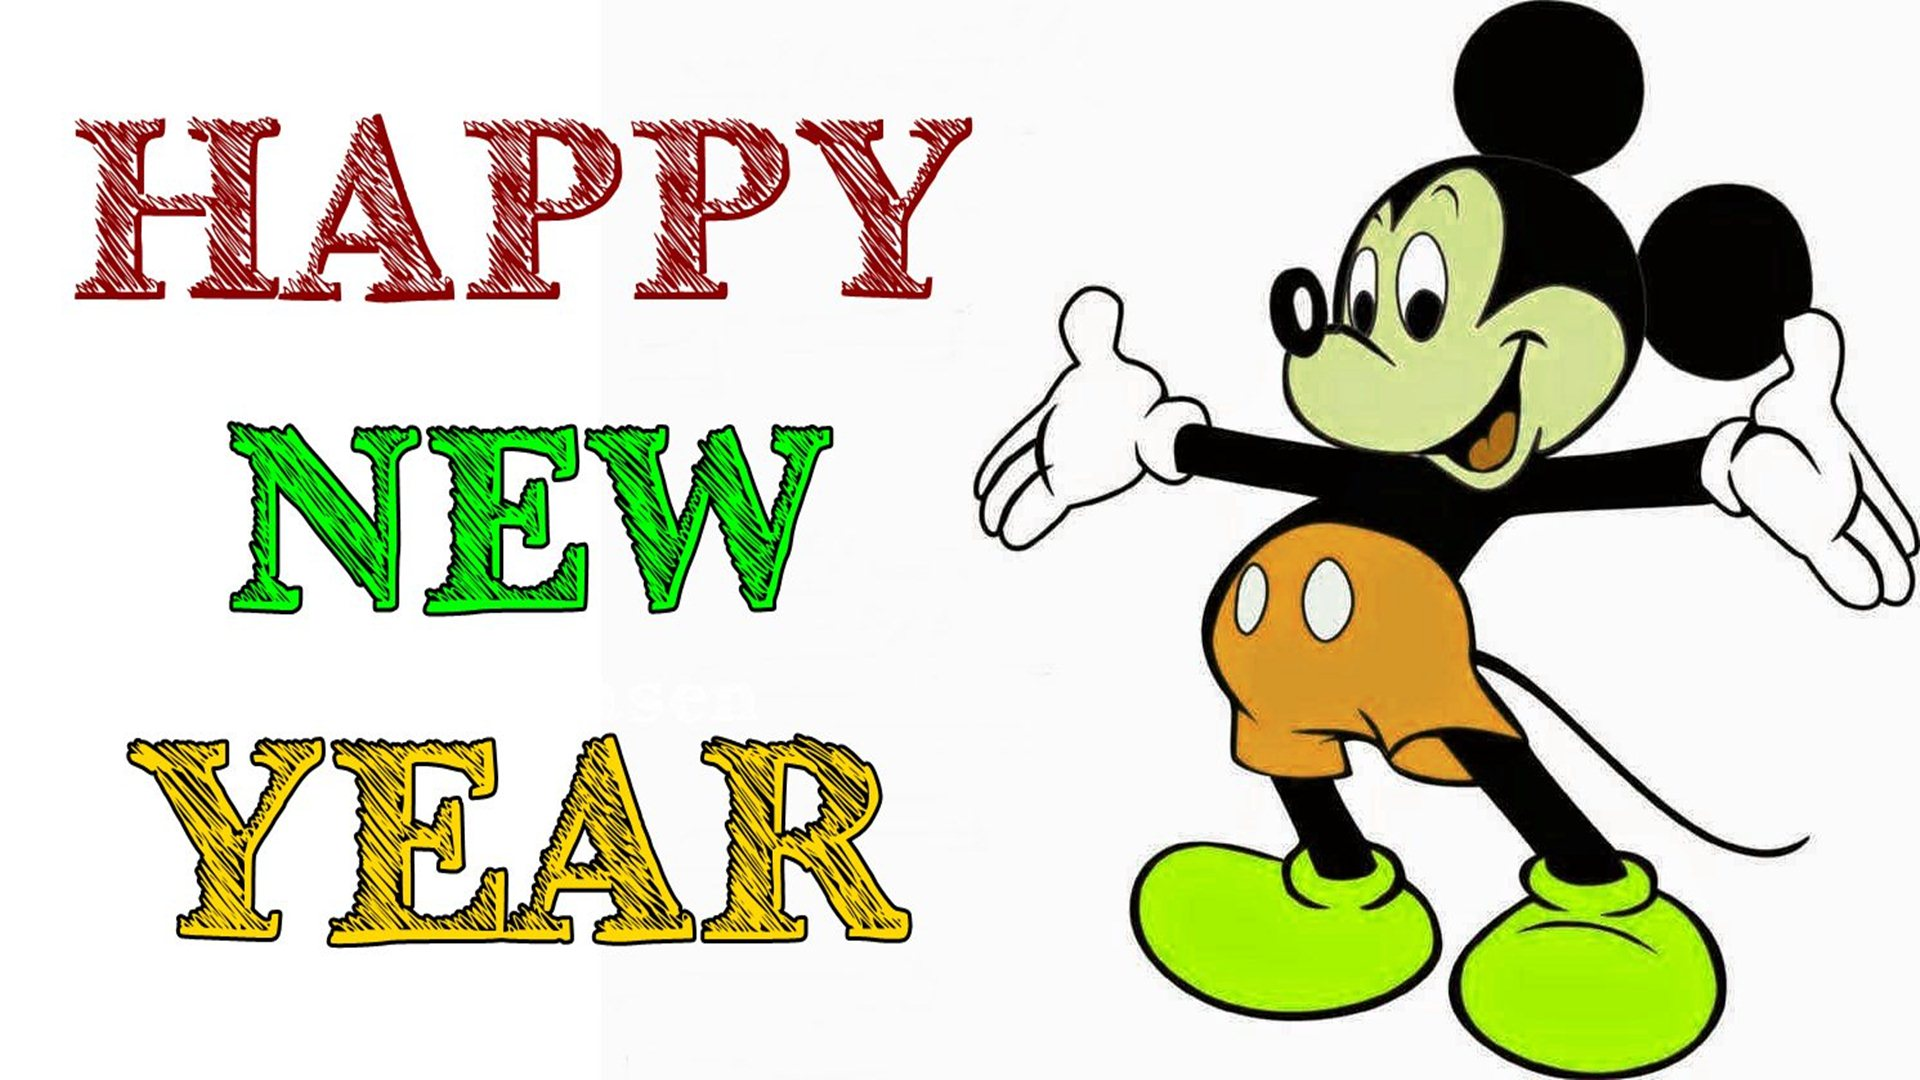 hight resolution of 1920x1080 happy new year clip art image free download con happy new year png